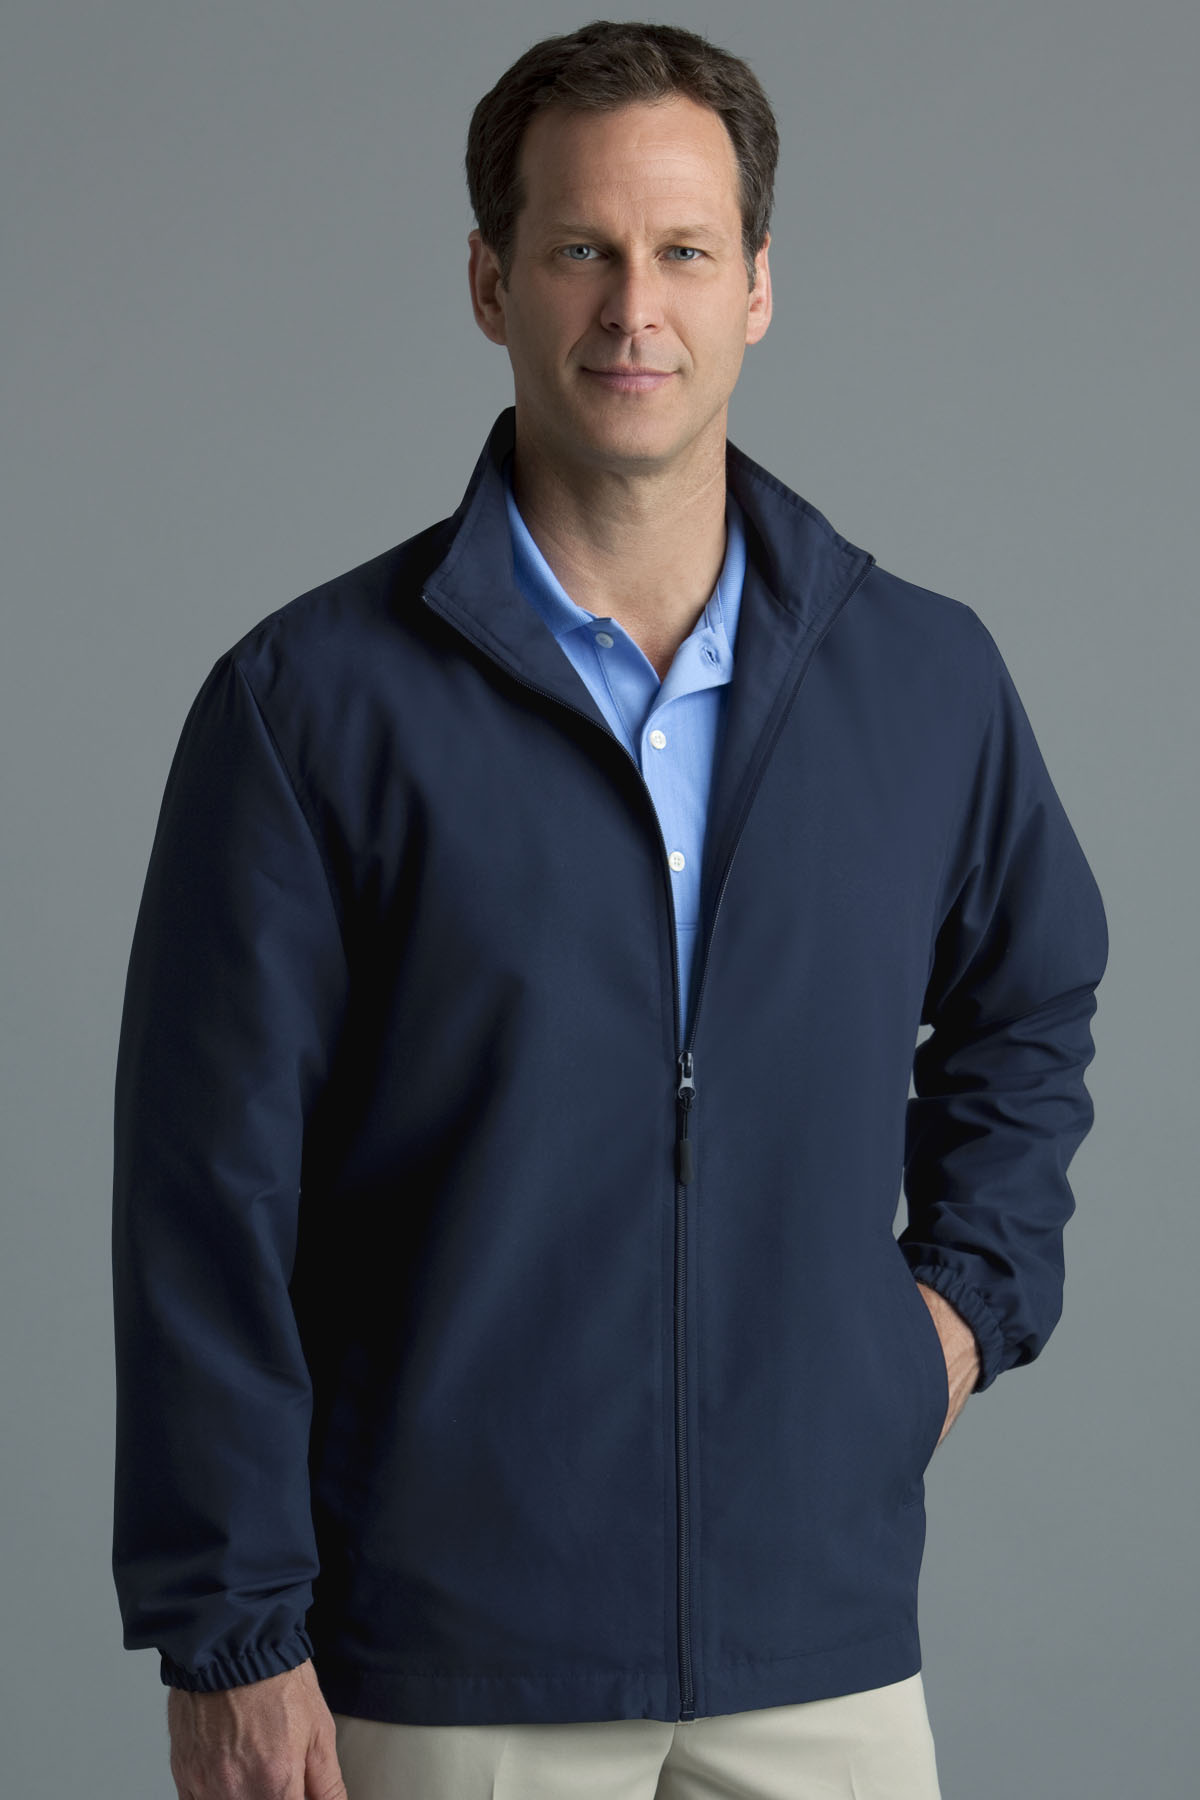 Greg Norman GNS0J500 - Full-Zip Windbreaker